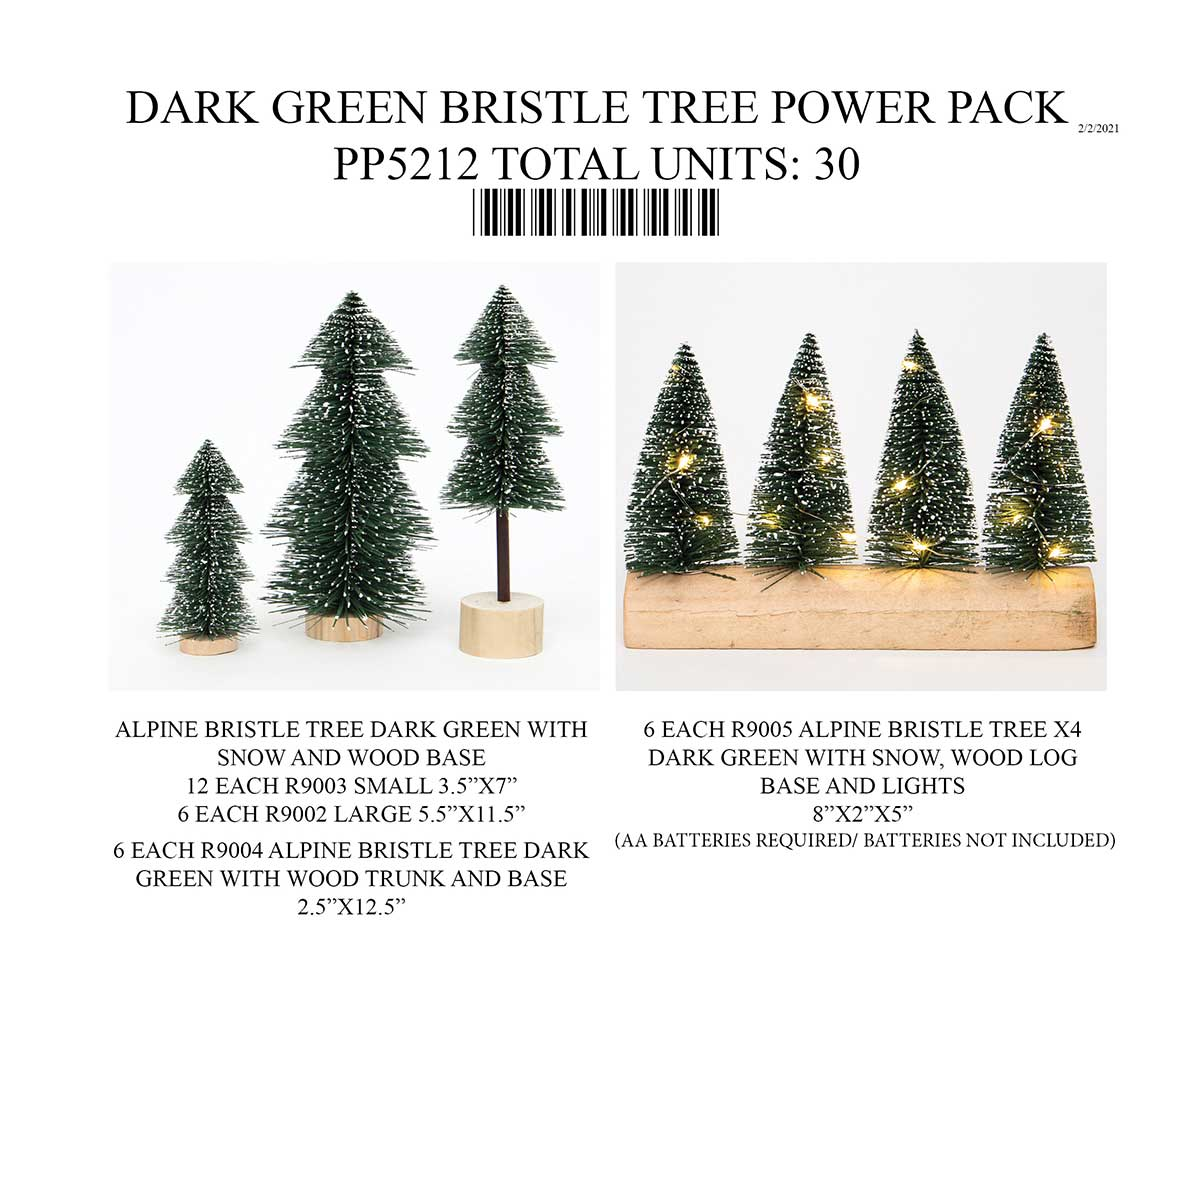 DARK GREEN BRISTLE TREE POWER PACK 30 UNITS PP5212